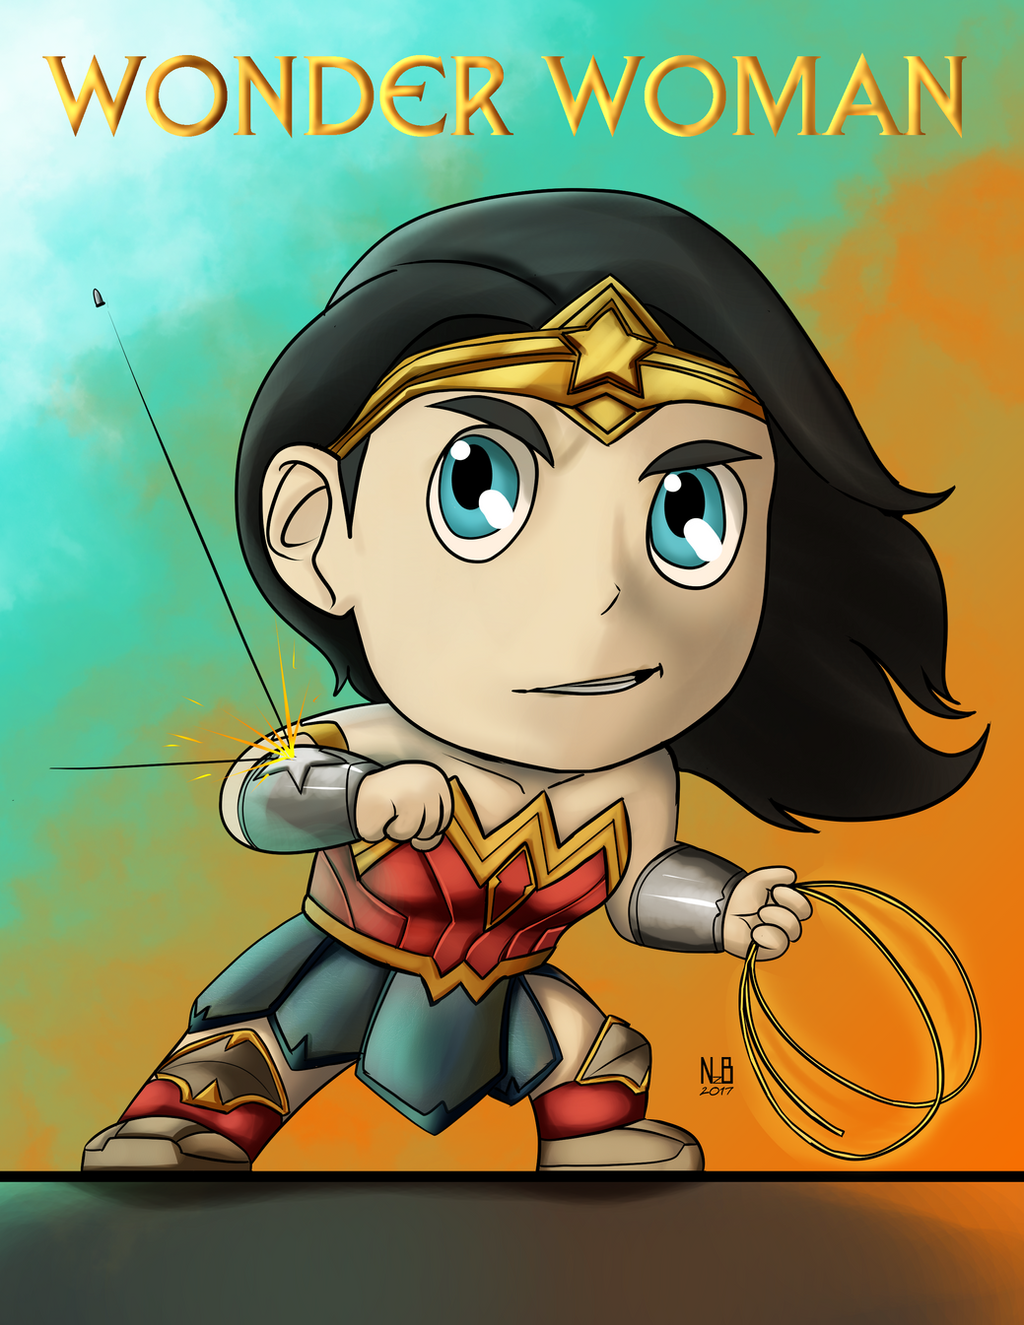 Wonder Woman Chibi by ConstantScribbles on DeviantArt